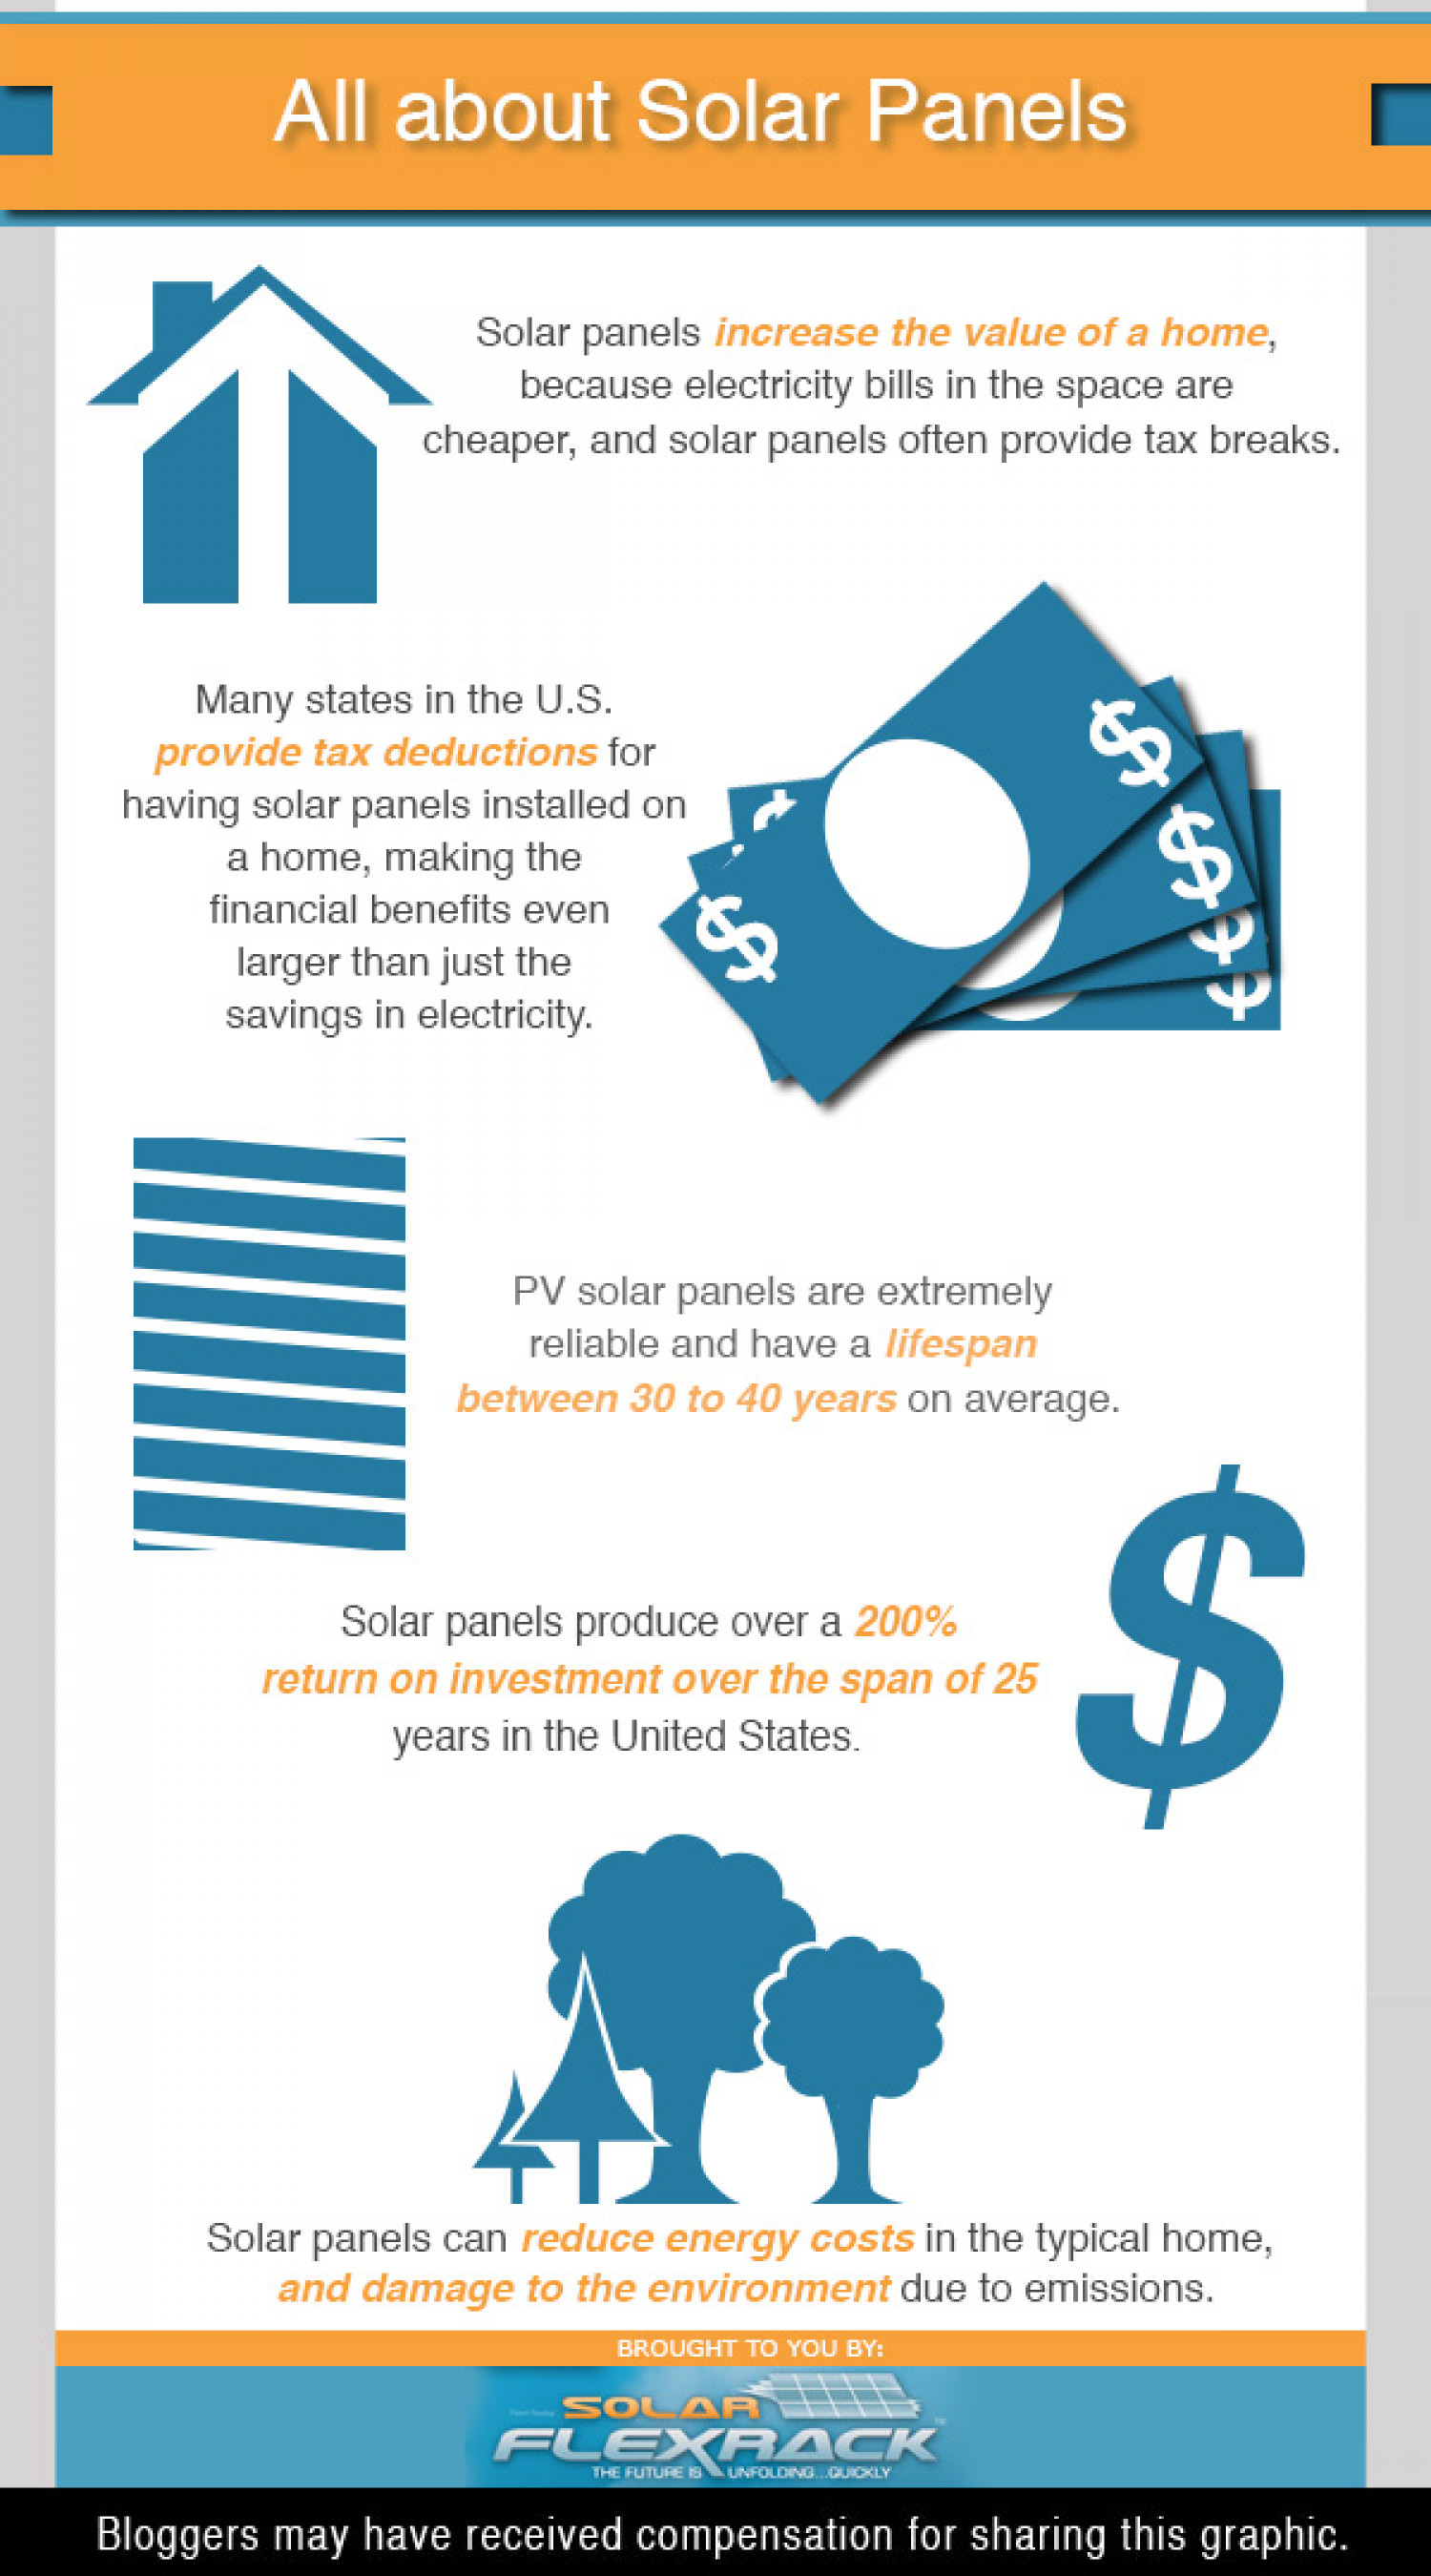 All About Solar Panels Infographic